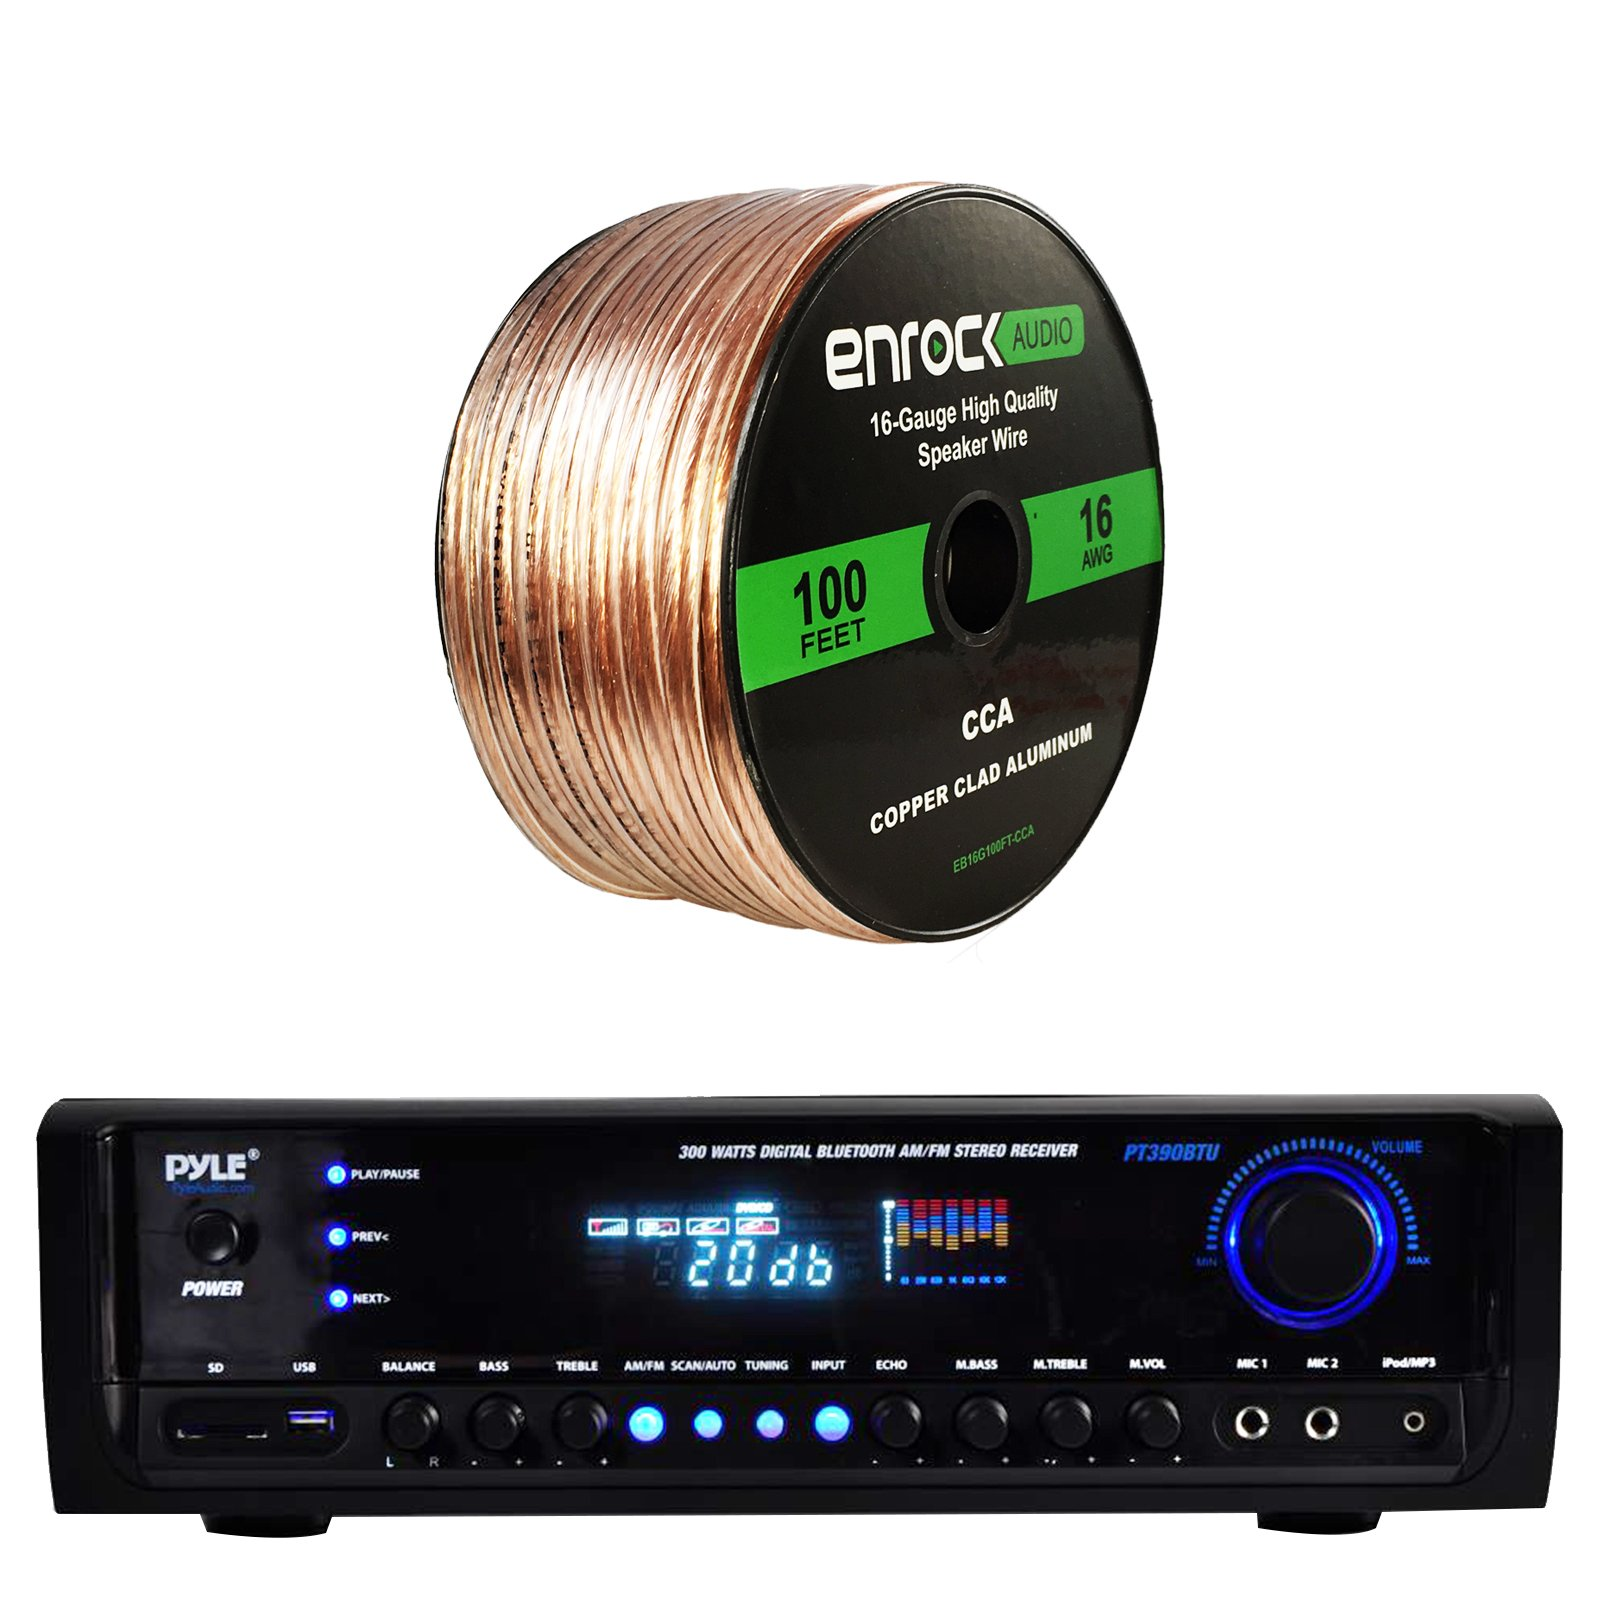 Pyle PT390BTU Bluetooth Digital Home Theater 300-Watt Stereo Receiver, with Enrock Audio 16-Gauge 100 Foot Speaker Wire by EnrockAudioBundle